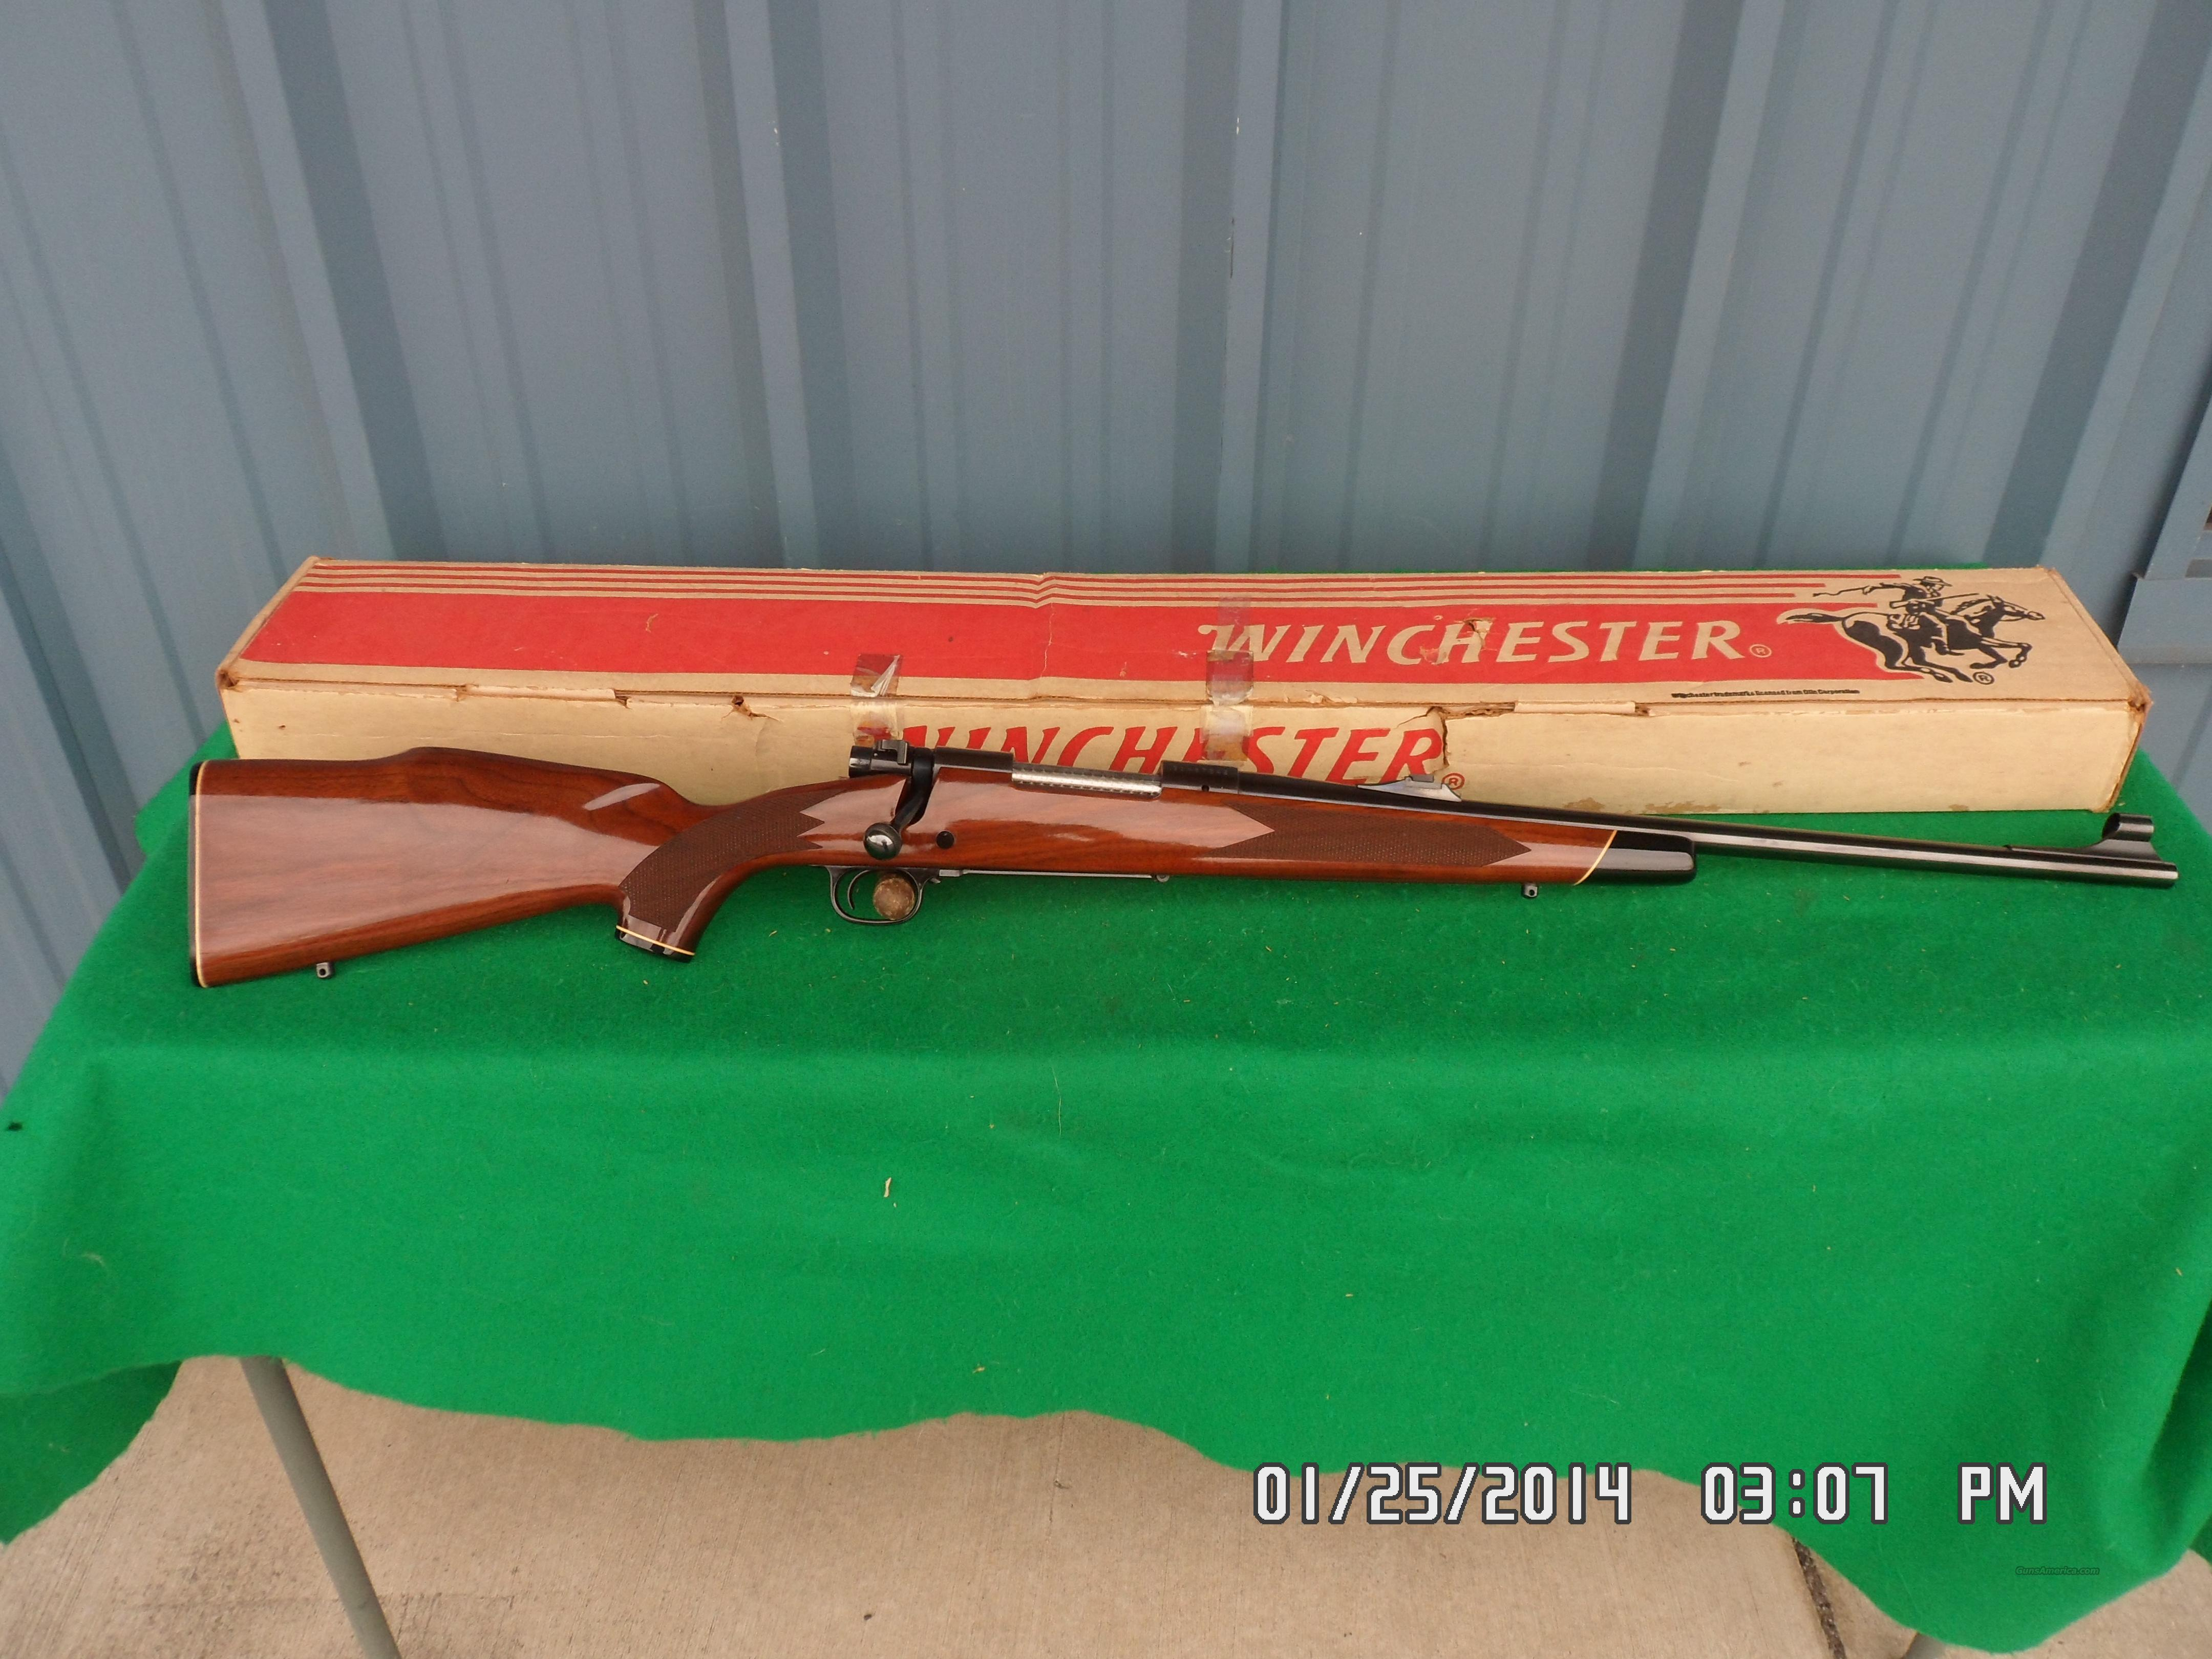 WINCHESTER MODEL 70 XTR DELUXE 1970'S  30-06 RIFLE UNFIRED AND NEW IN BOX.99%PLUS!  Guns > Rifles > Winchester Rifles - Modern Bolt/Auto/Single > Model 70 > Post-64